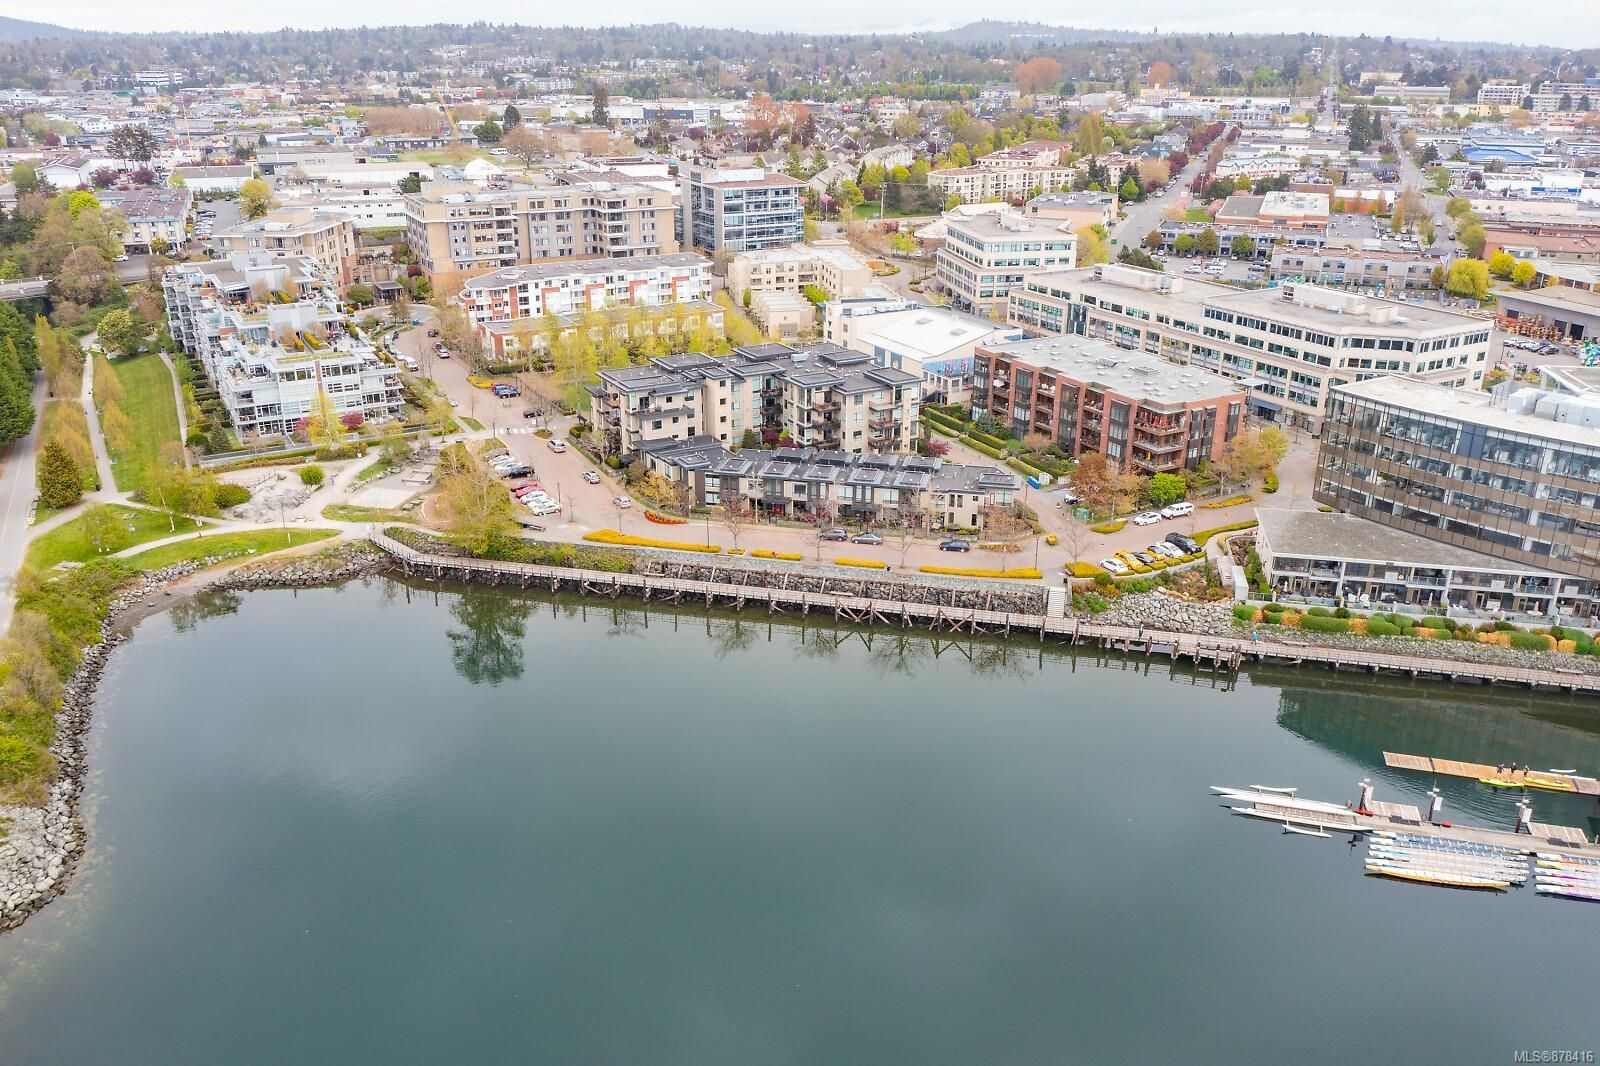 Main Photo: 5 330 Waterfront Cres in : Vi Rock Bay Row/Townhouse for sale (Victoria)  : MLS®# 878416